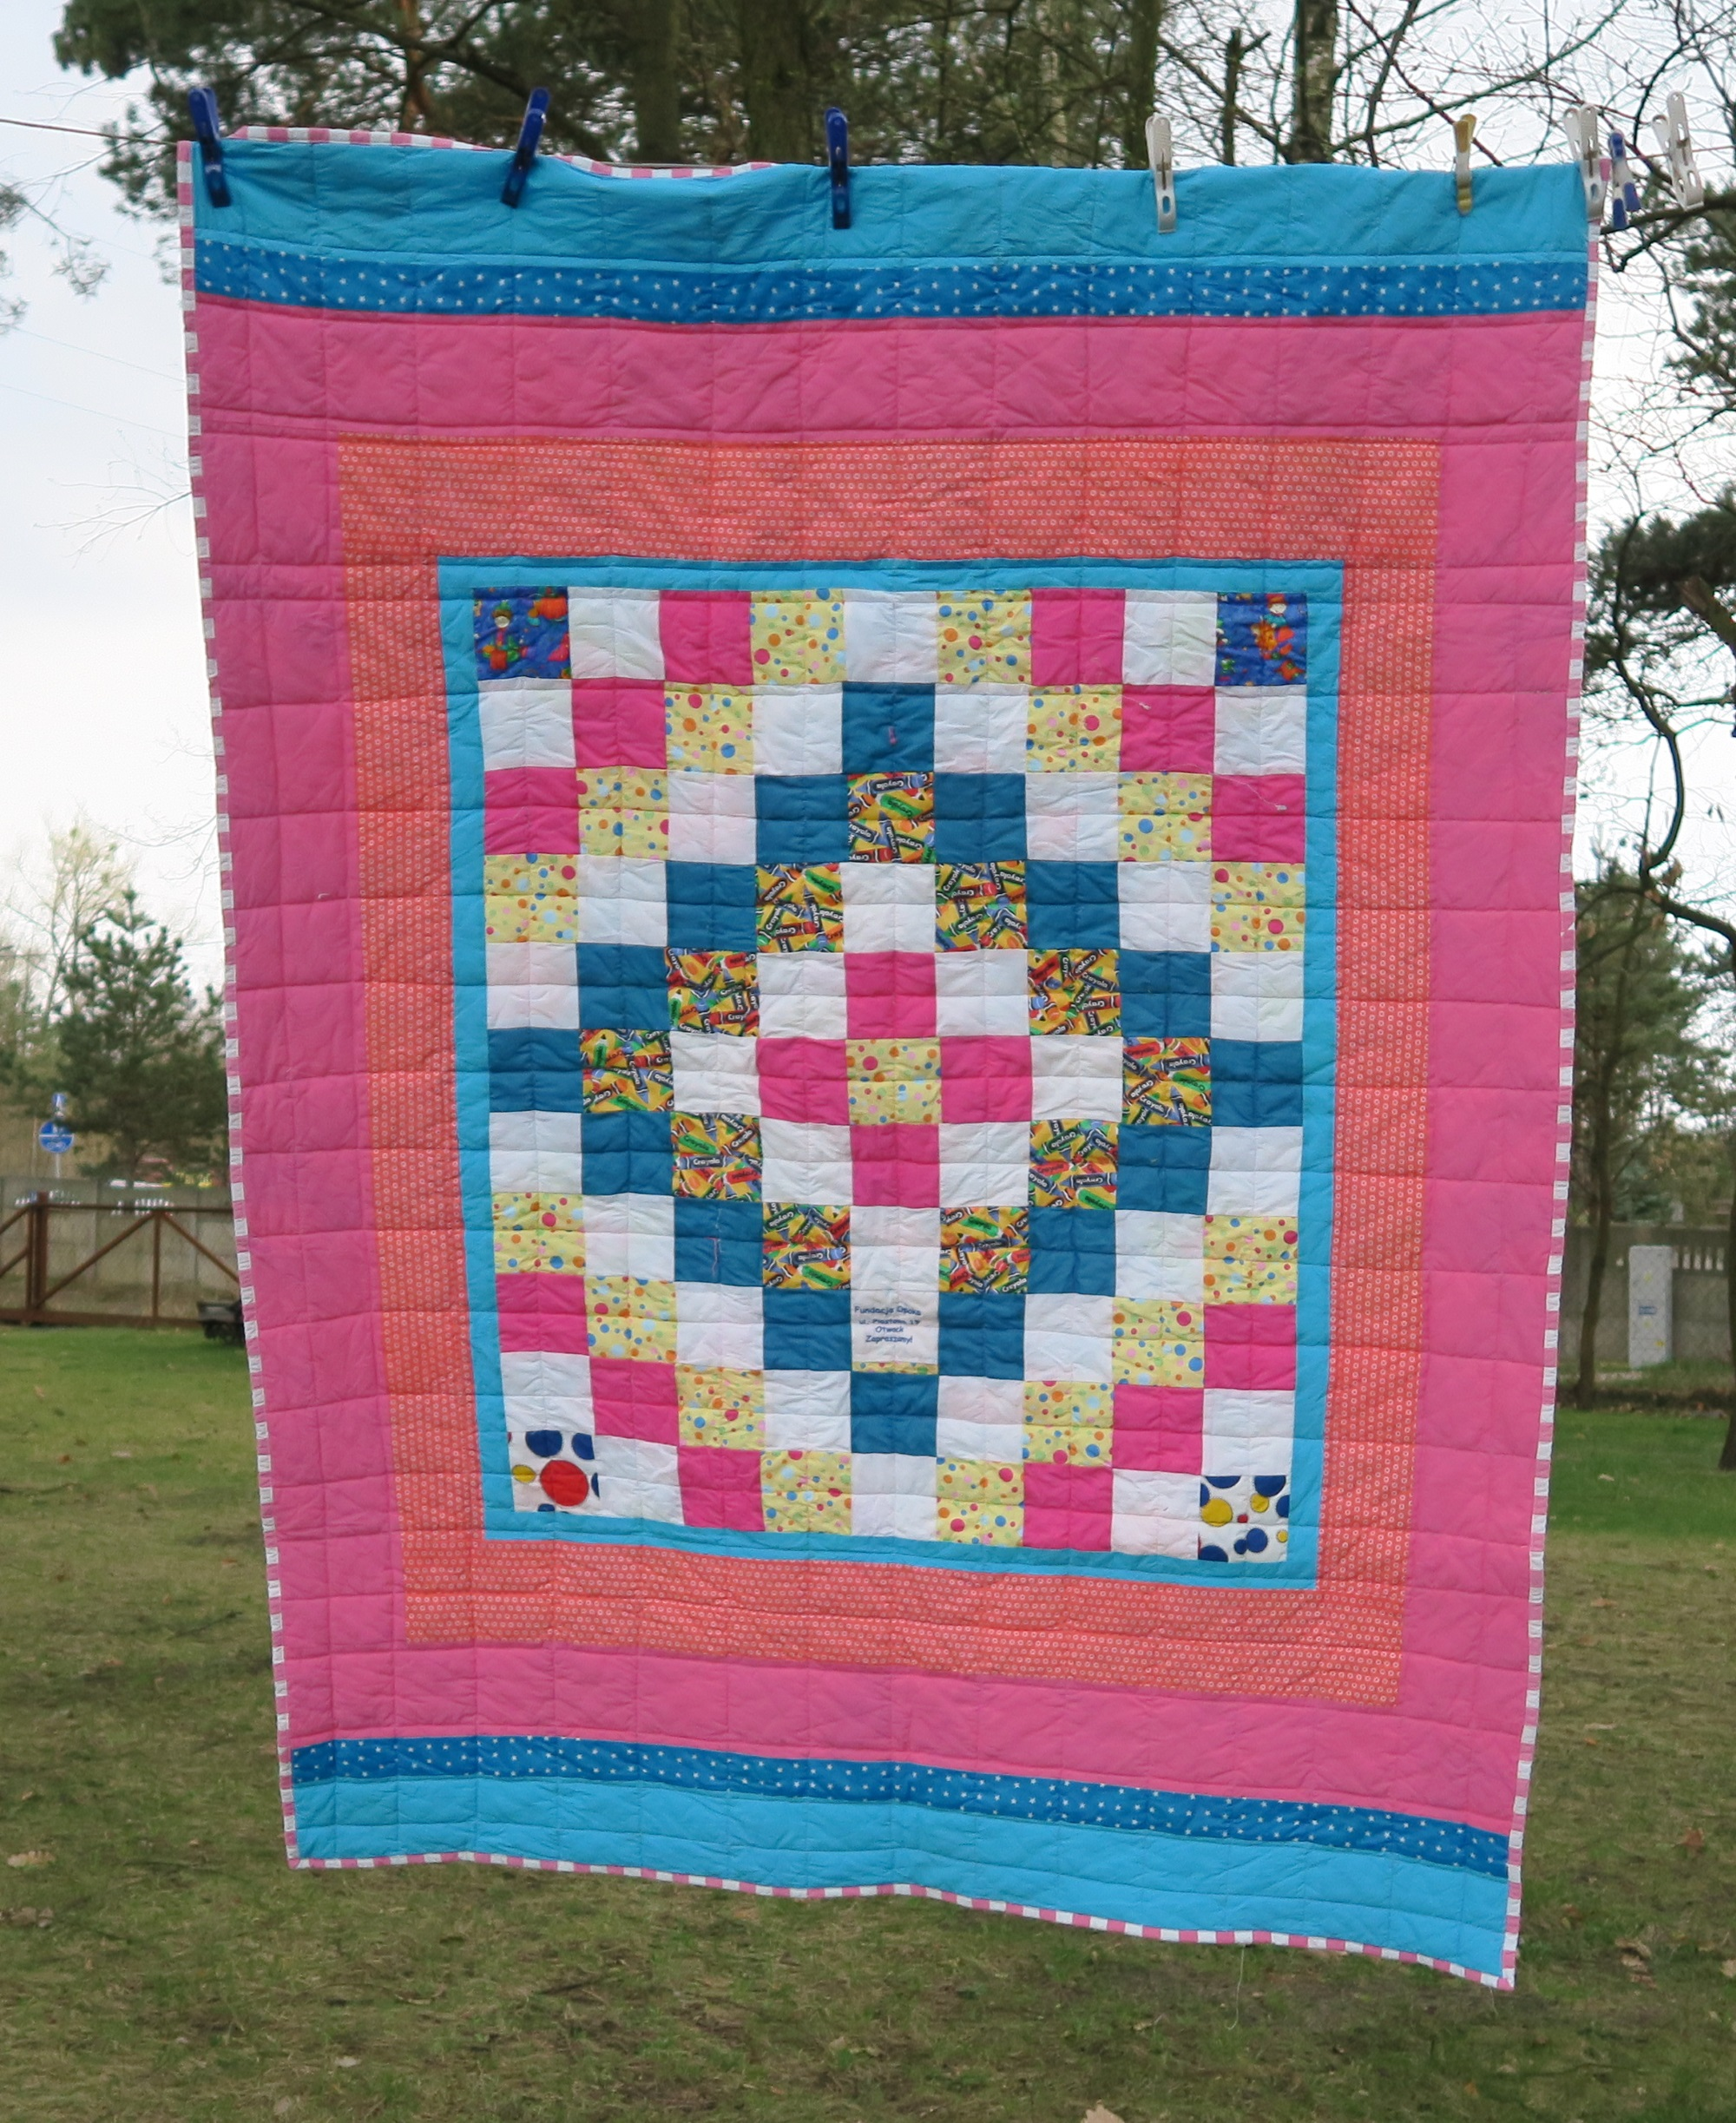 18. Center of the top donated by a friend in AZ. I added borders to it until it became a European twin size.